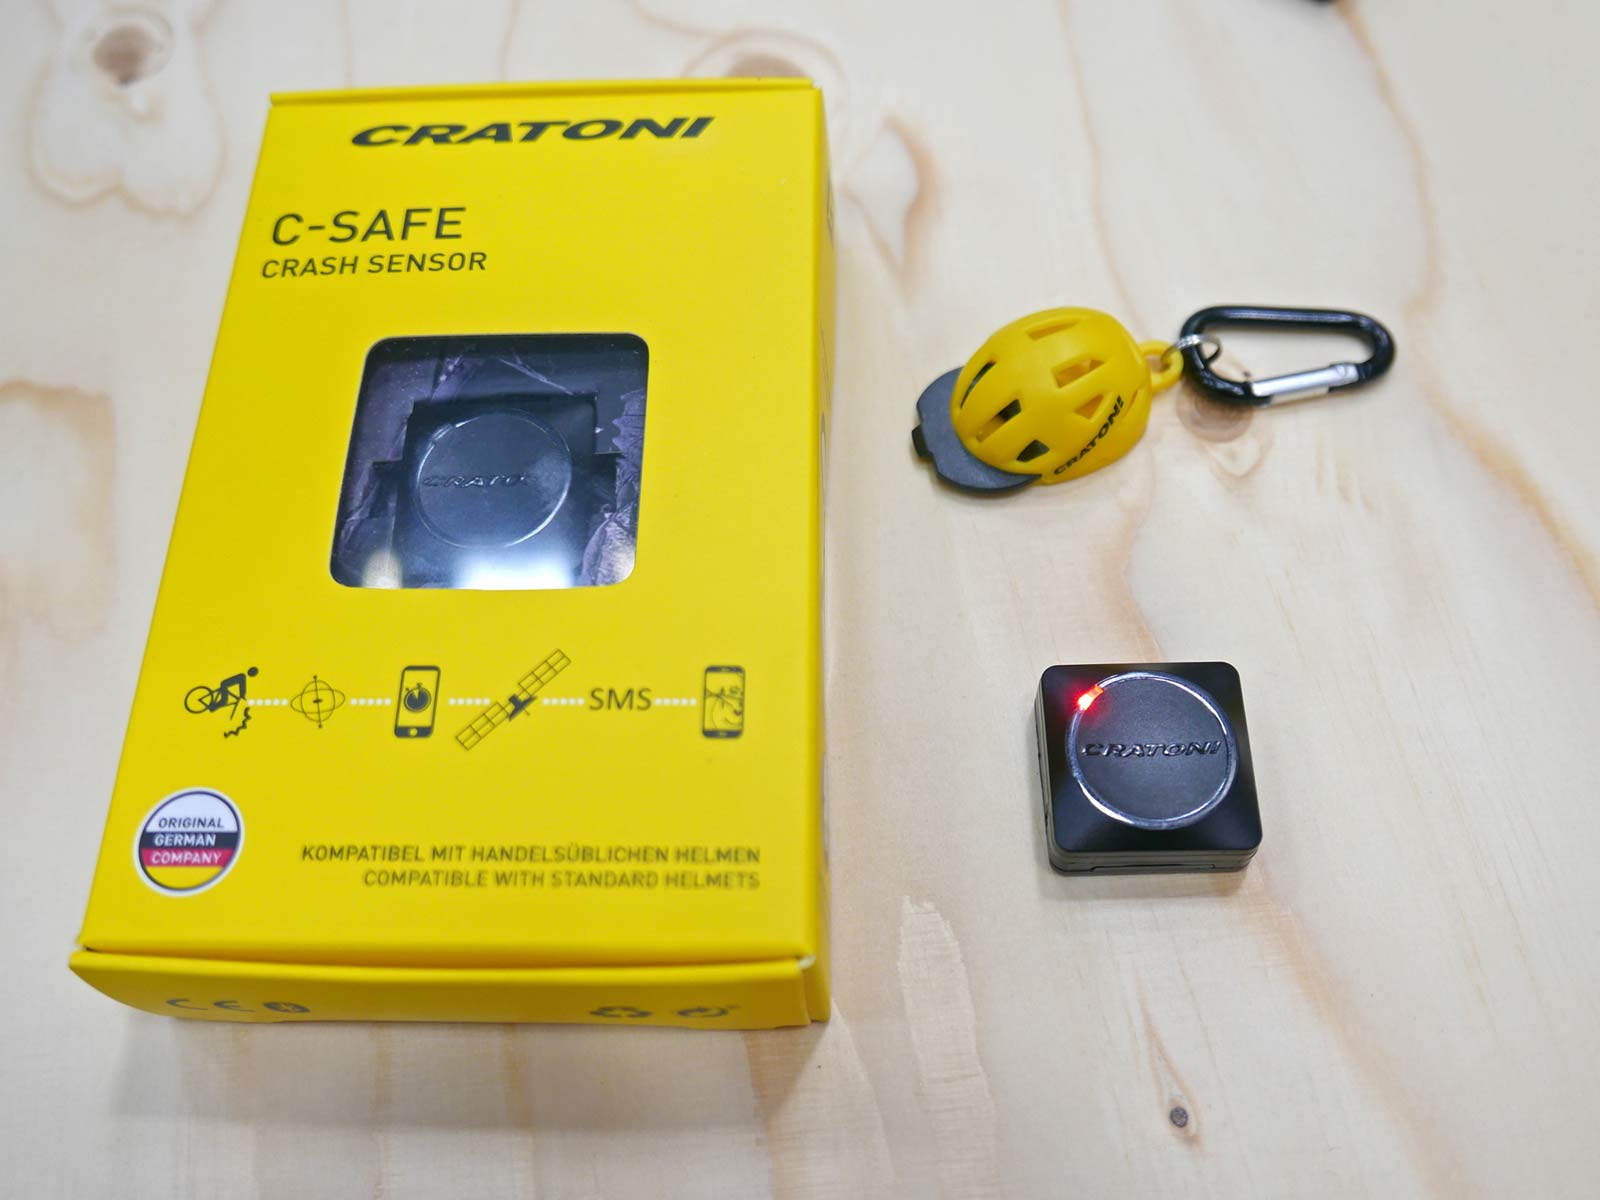 Cratoni C-Safe crash sensor, add-on impact detection safety upgrade for any helmet,what's in teh box?